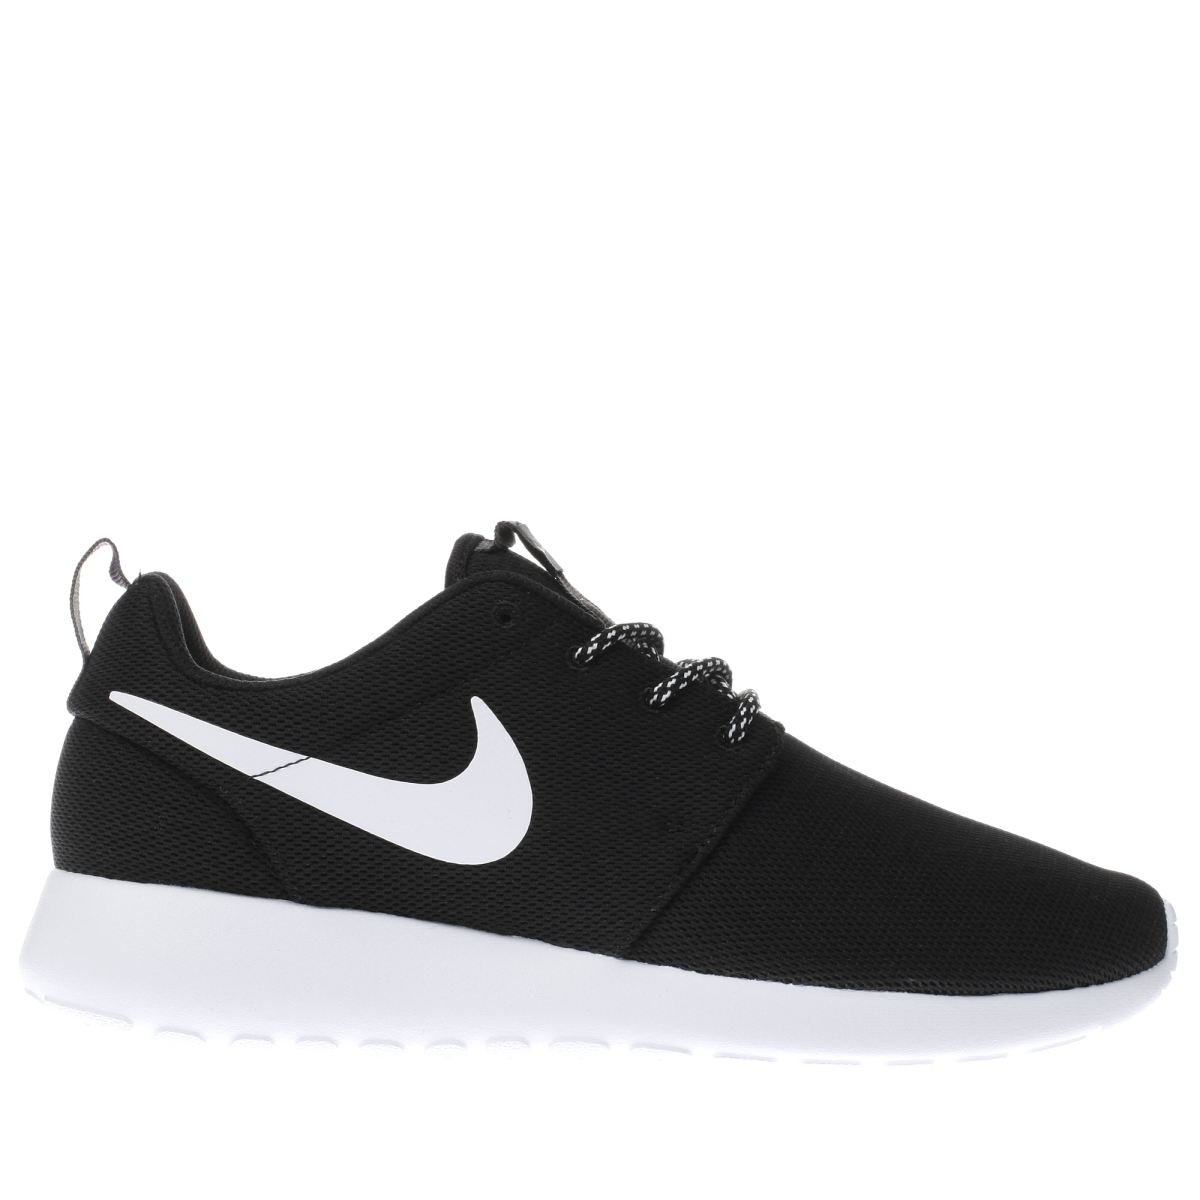 Nike Trainers & Shoes | Nike Shoes for Men, Women & Kids | schuh